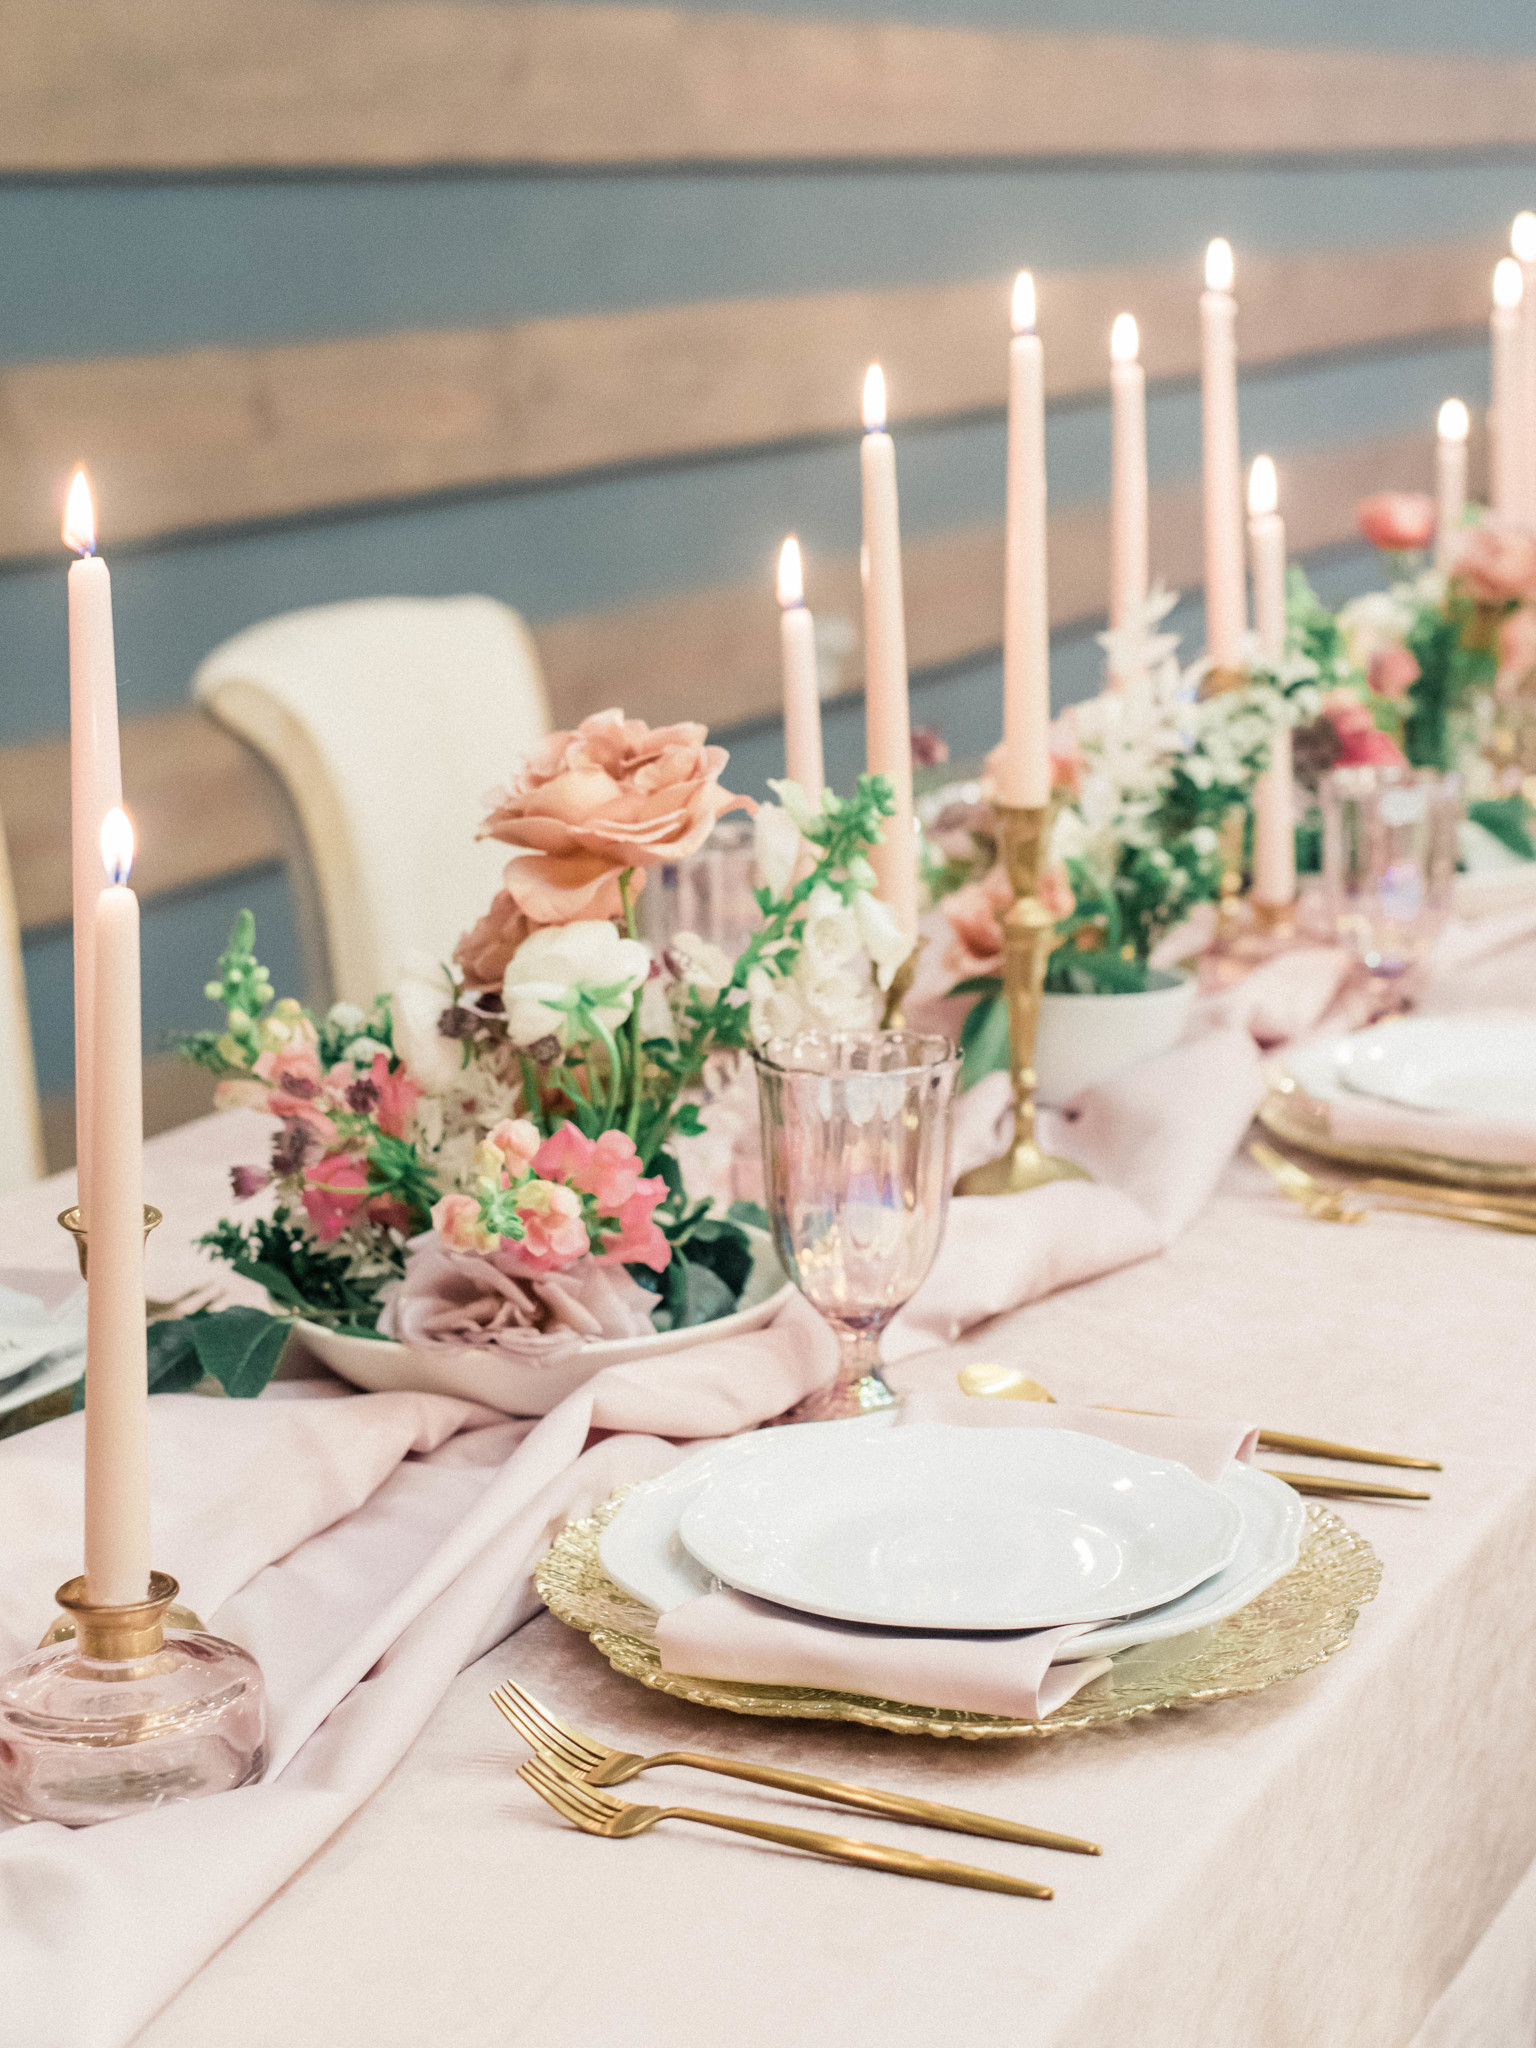 Candle wedding centerpieces: Whimsical mauve wedding inspiration on Alexa Kay Events. See more romantic wedding ideas at alexakayevents.com!